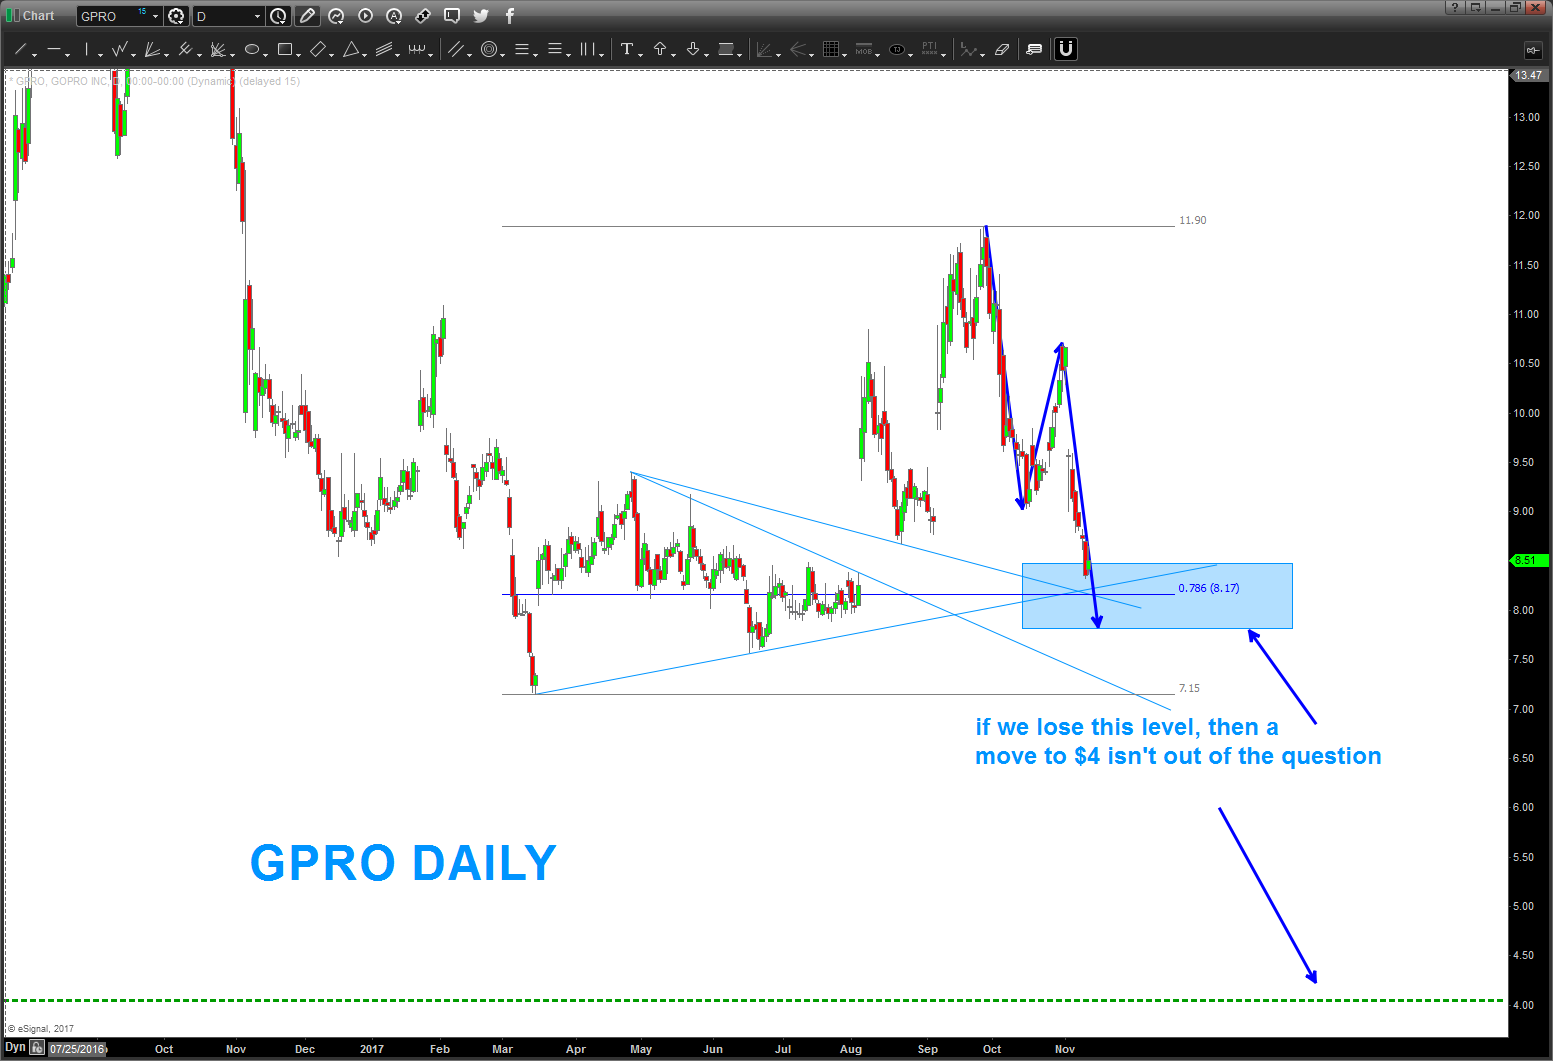 gopro stock chart technical price analysis_lower price target_4 dollars_news_november